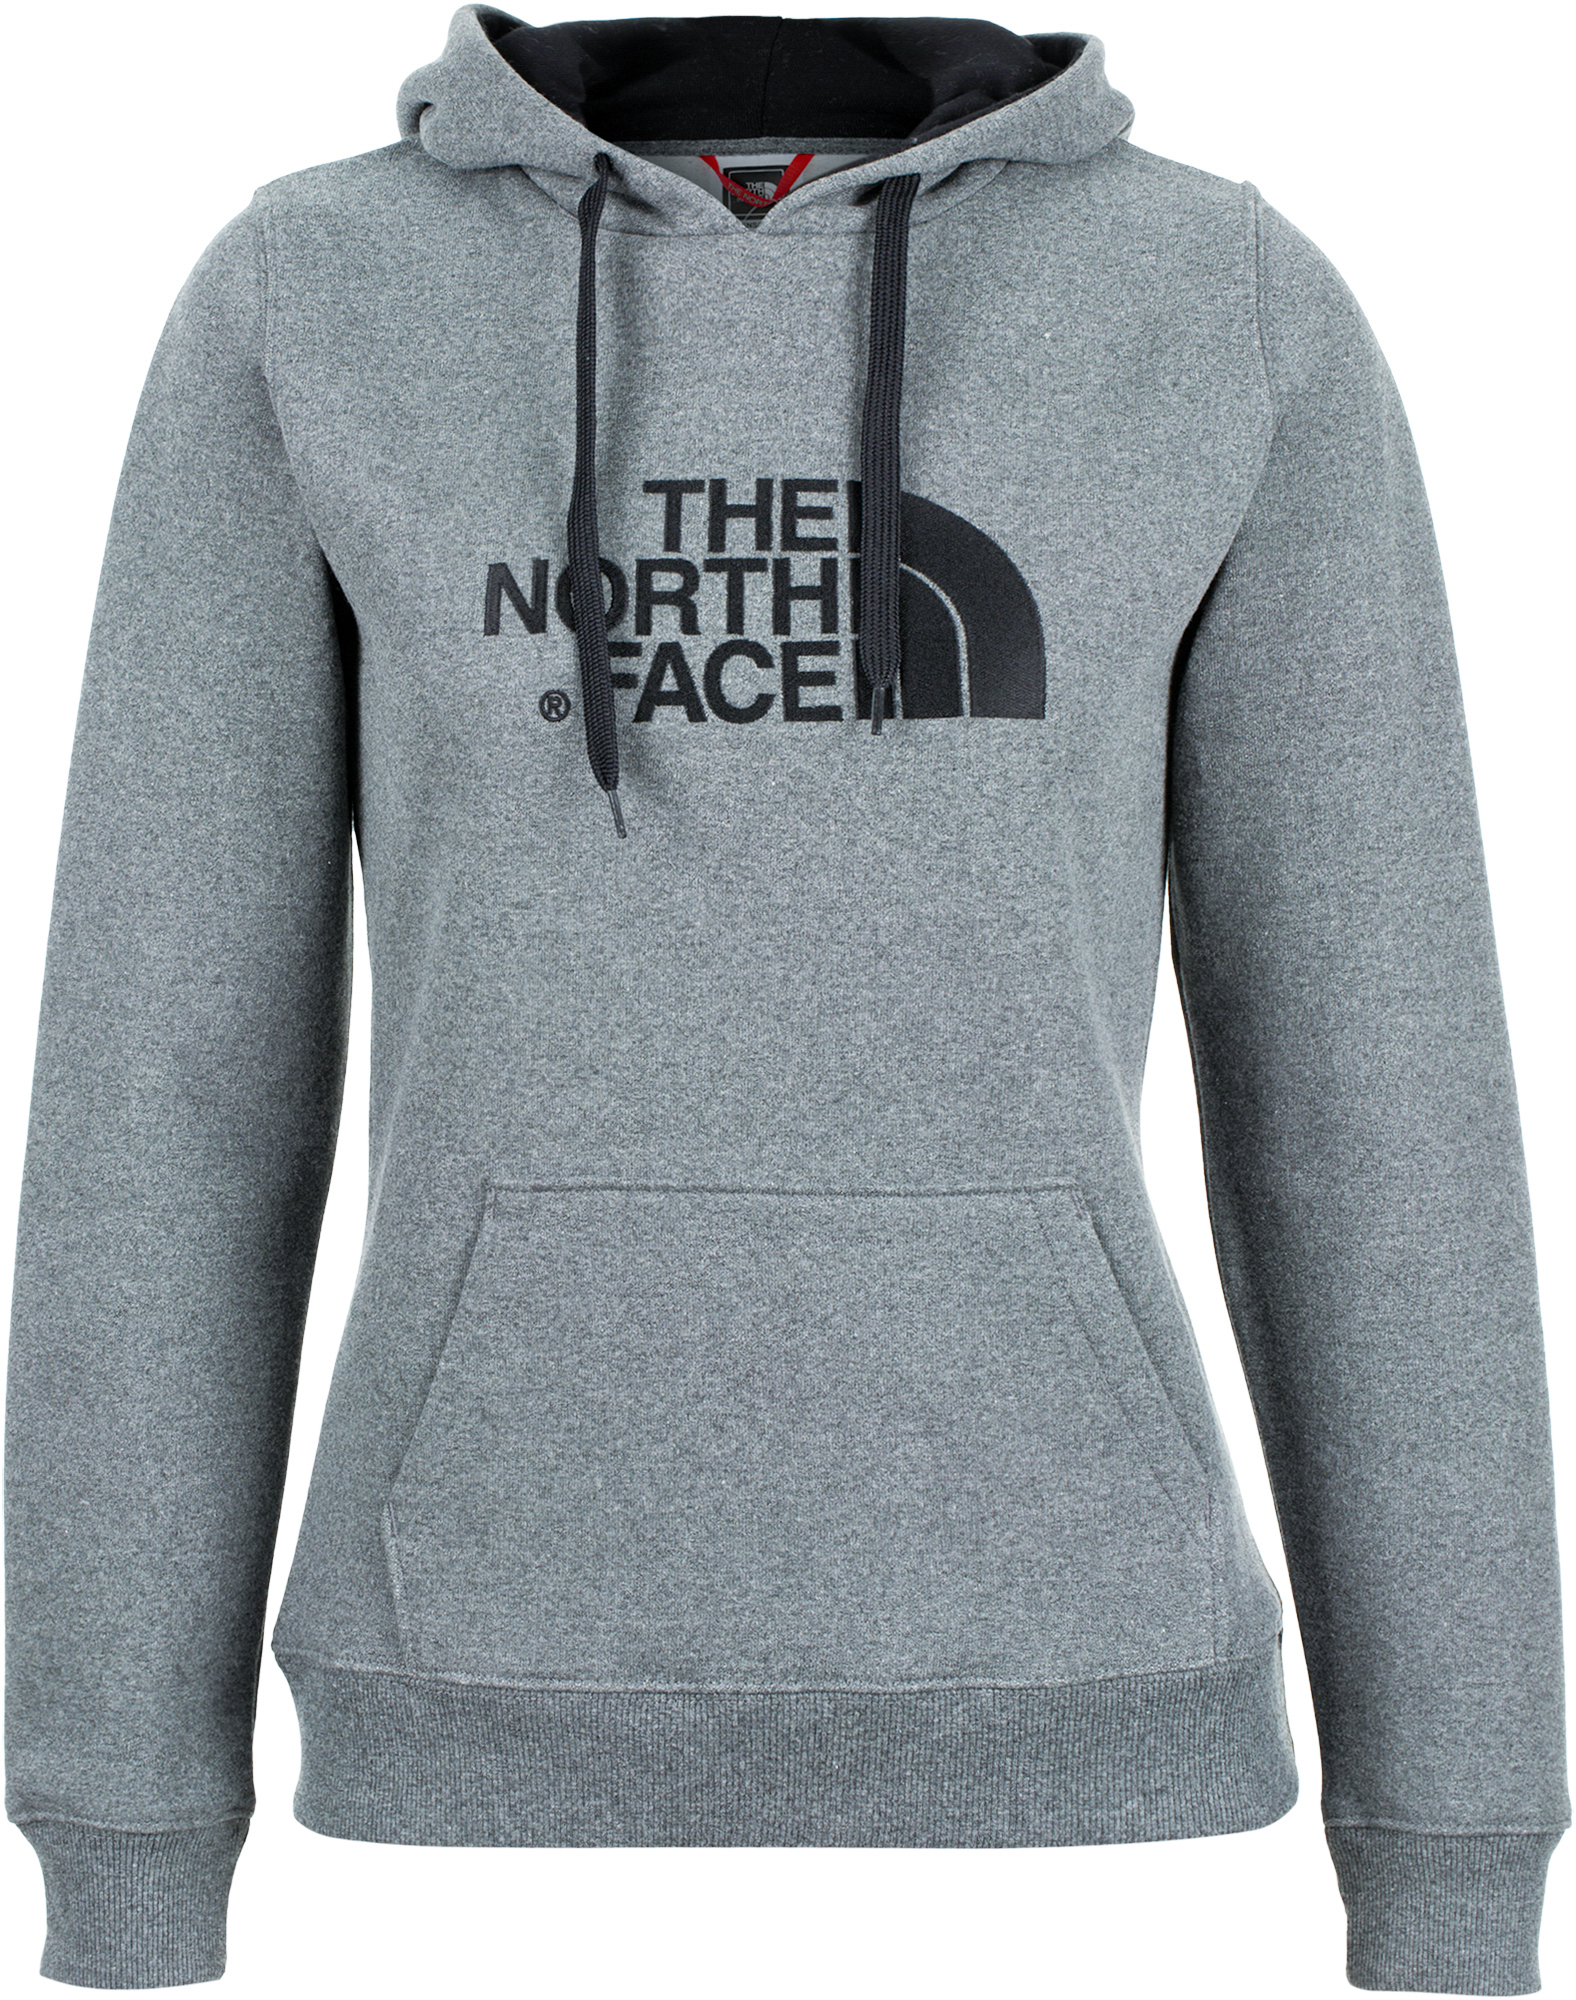 The North Face Худи женская The North Face Drew Peak, размер 42 drew magary the end specialist